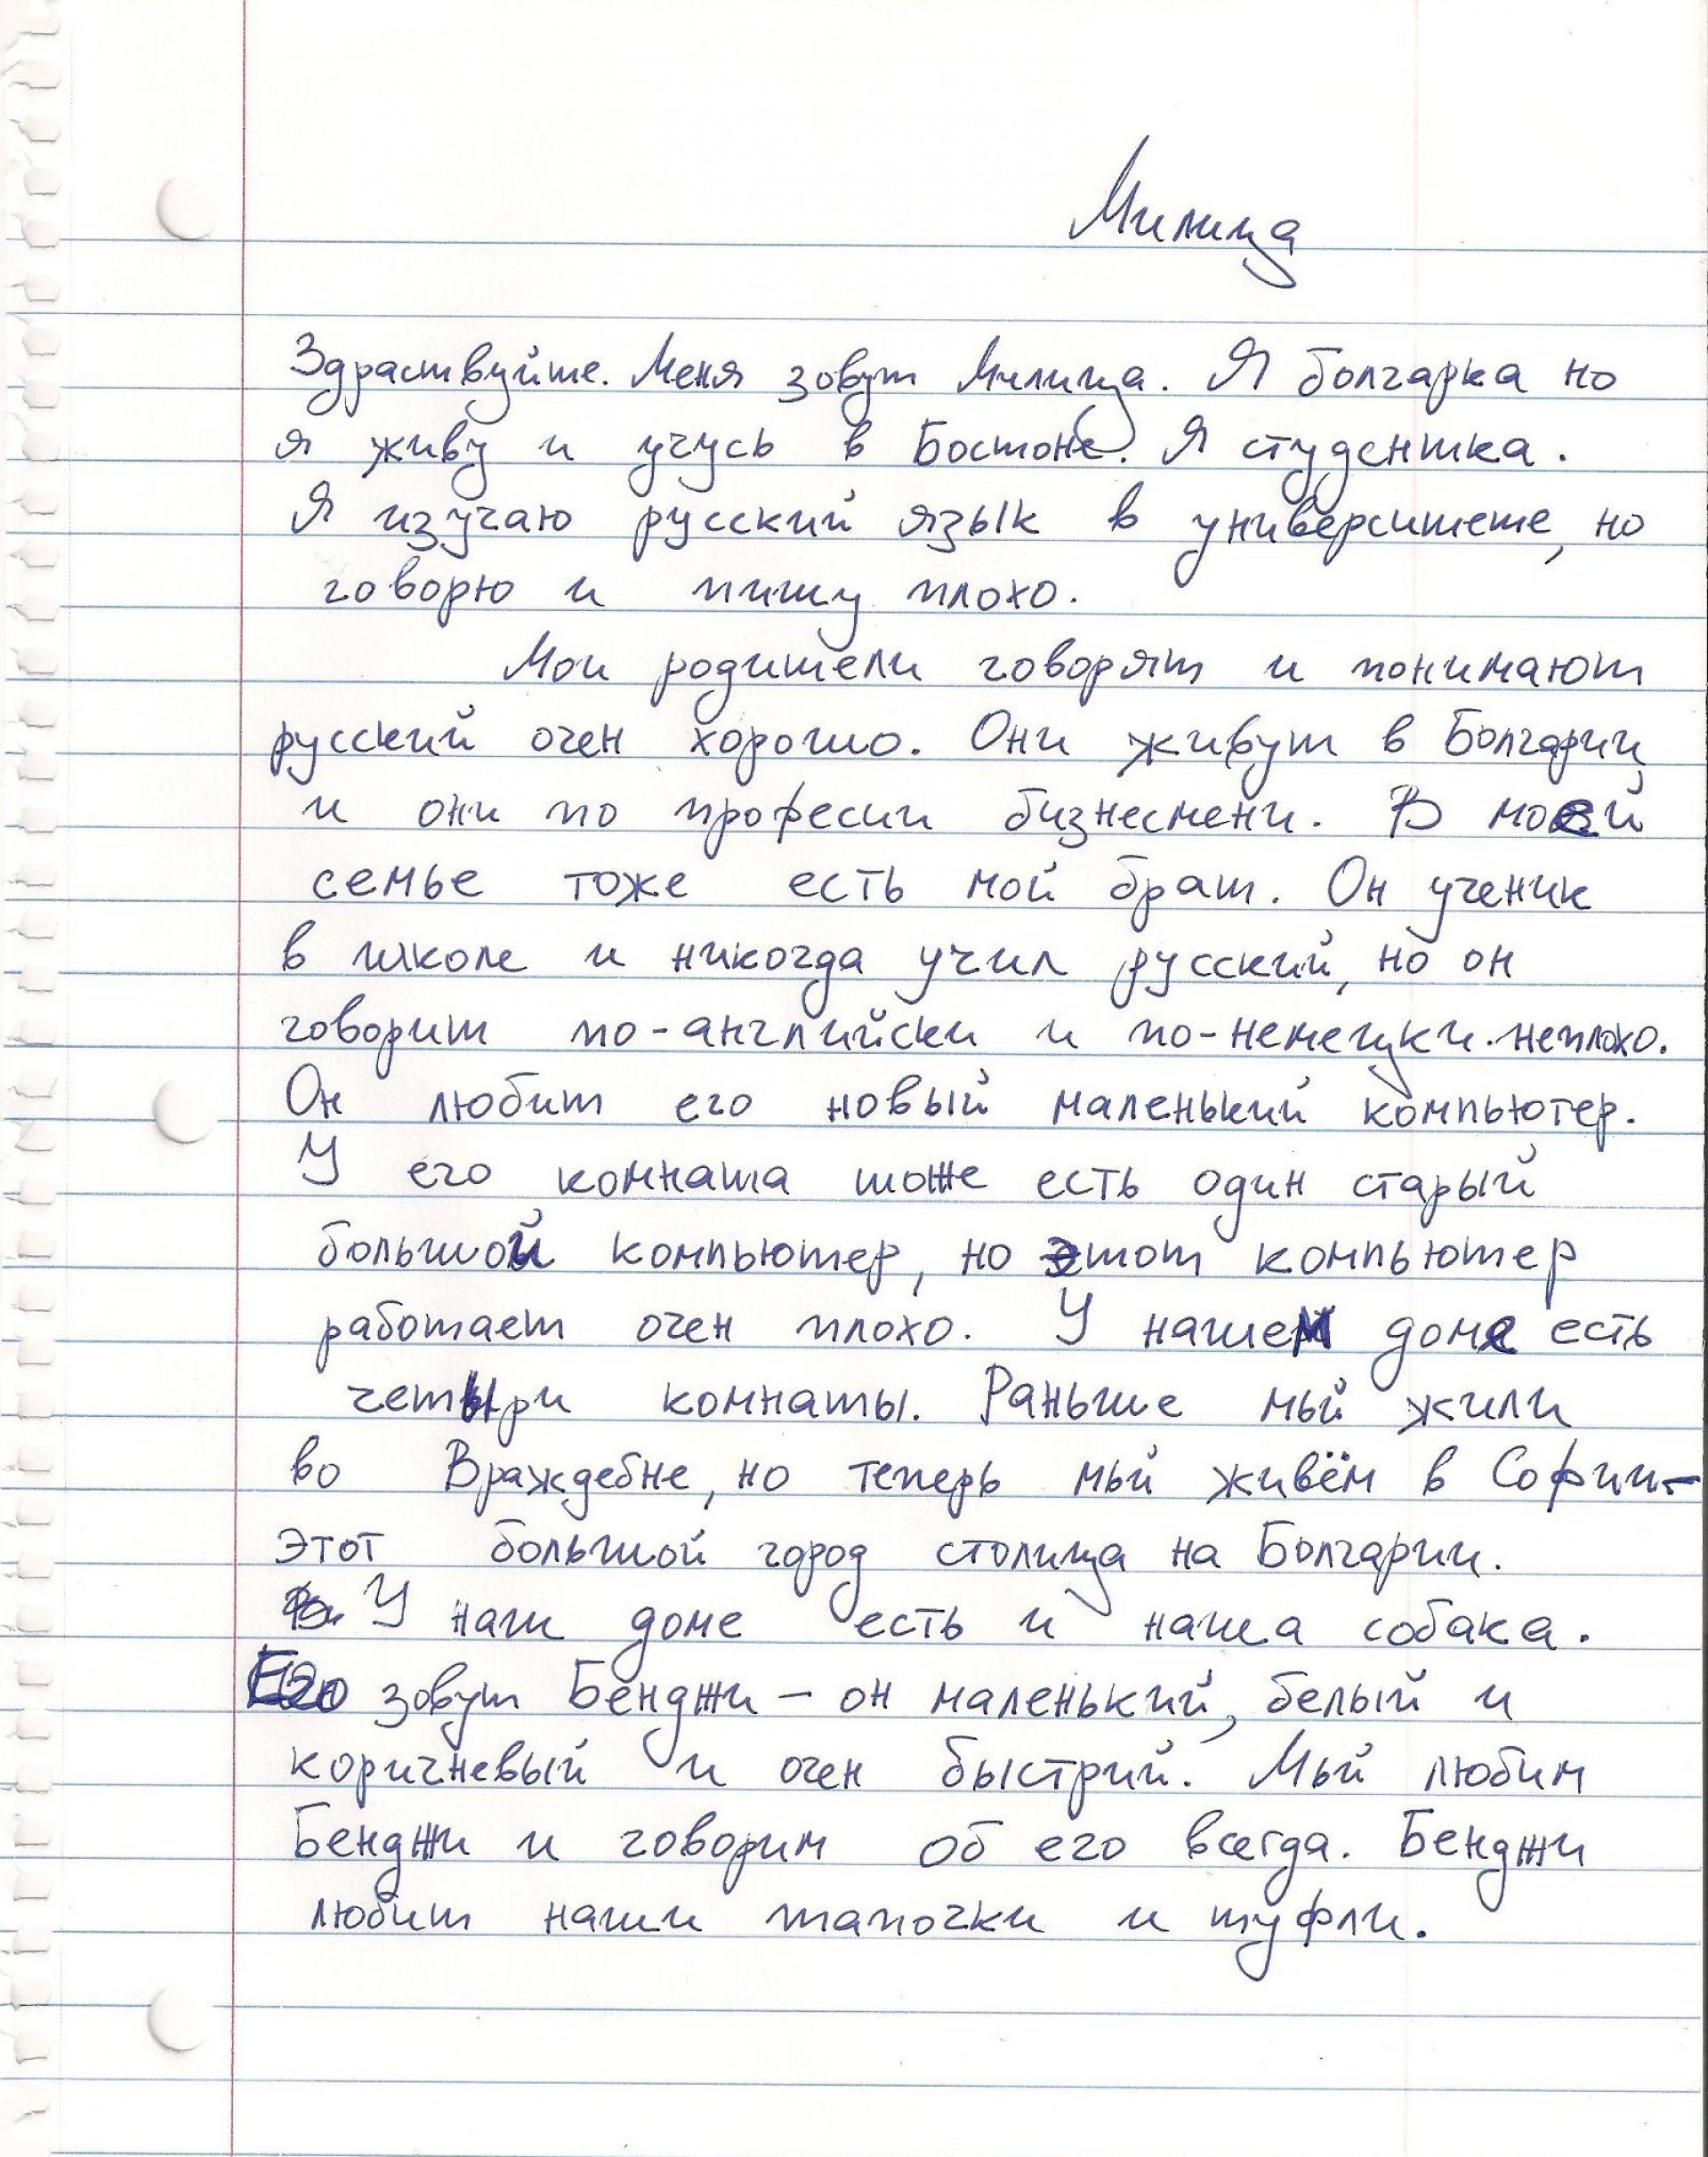 014 Help With My Essay Russian Surprising Me Introduction Sound Better Research Paper For Free 1920